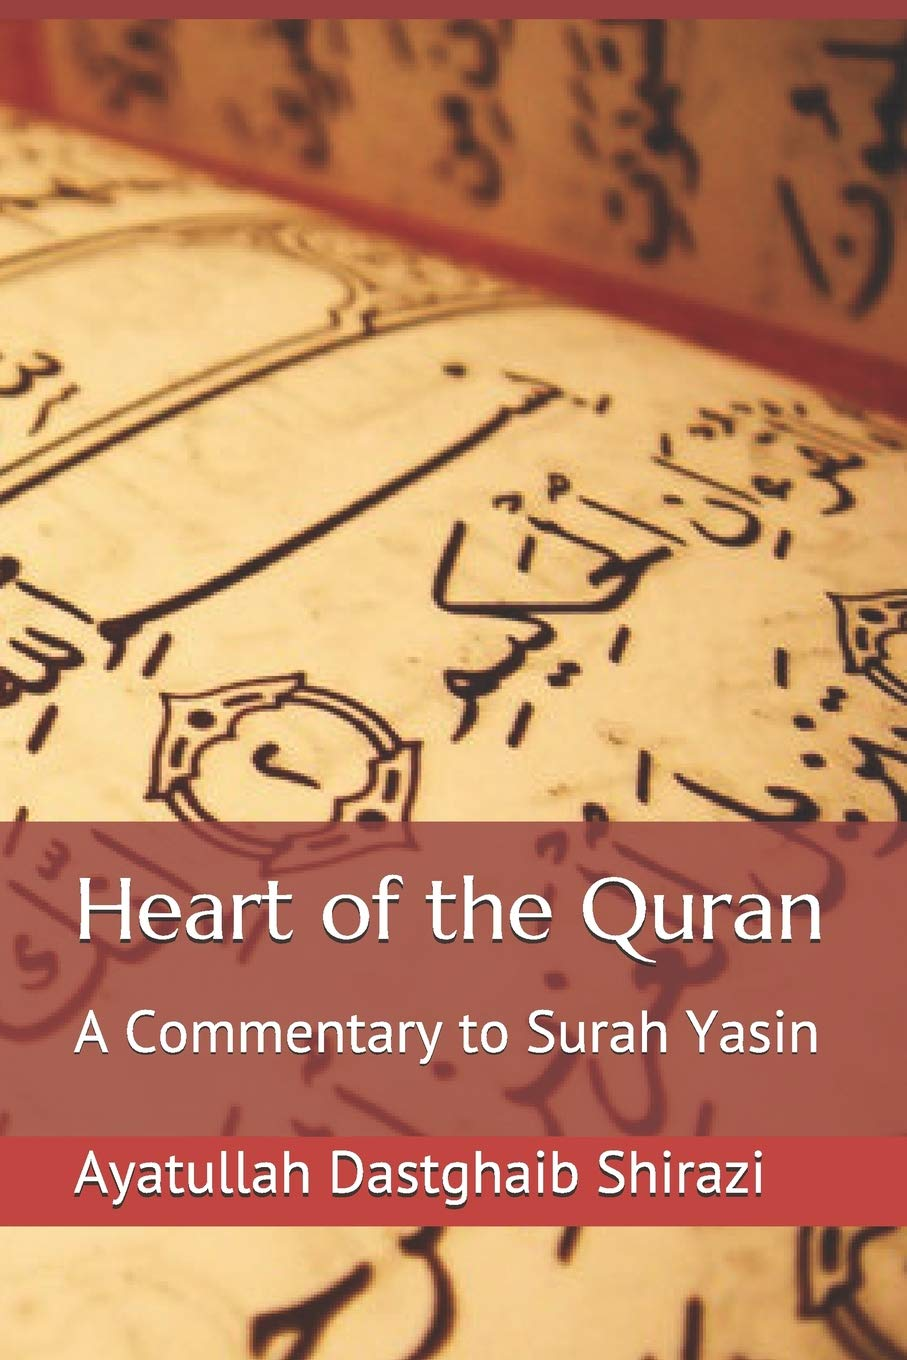 Surah Yasin Page 2 >> Heart Of The Quran A Commentary To Surah Yasin Ayatullah